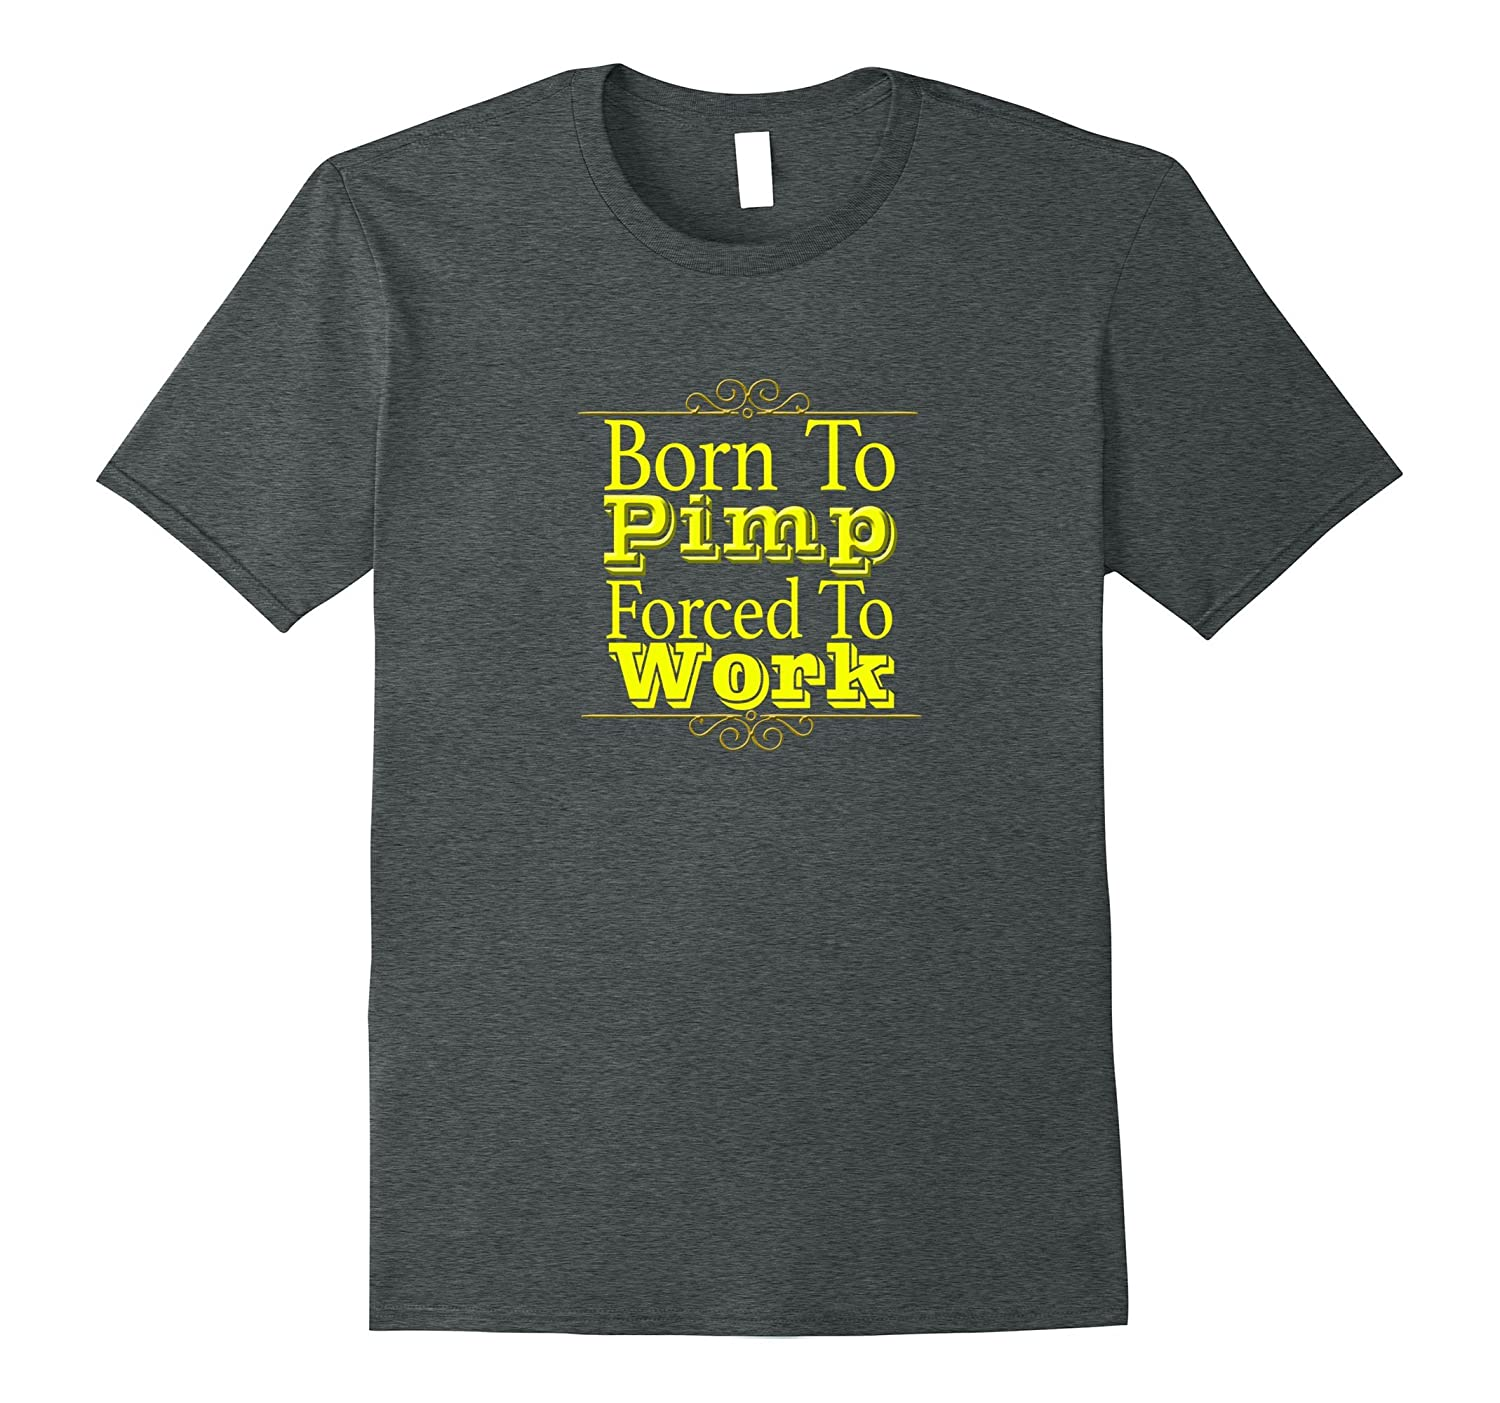 Born To Pimp Funny T-shirt for Nerdy Pimp Wannabe-TH